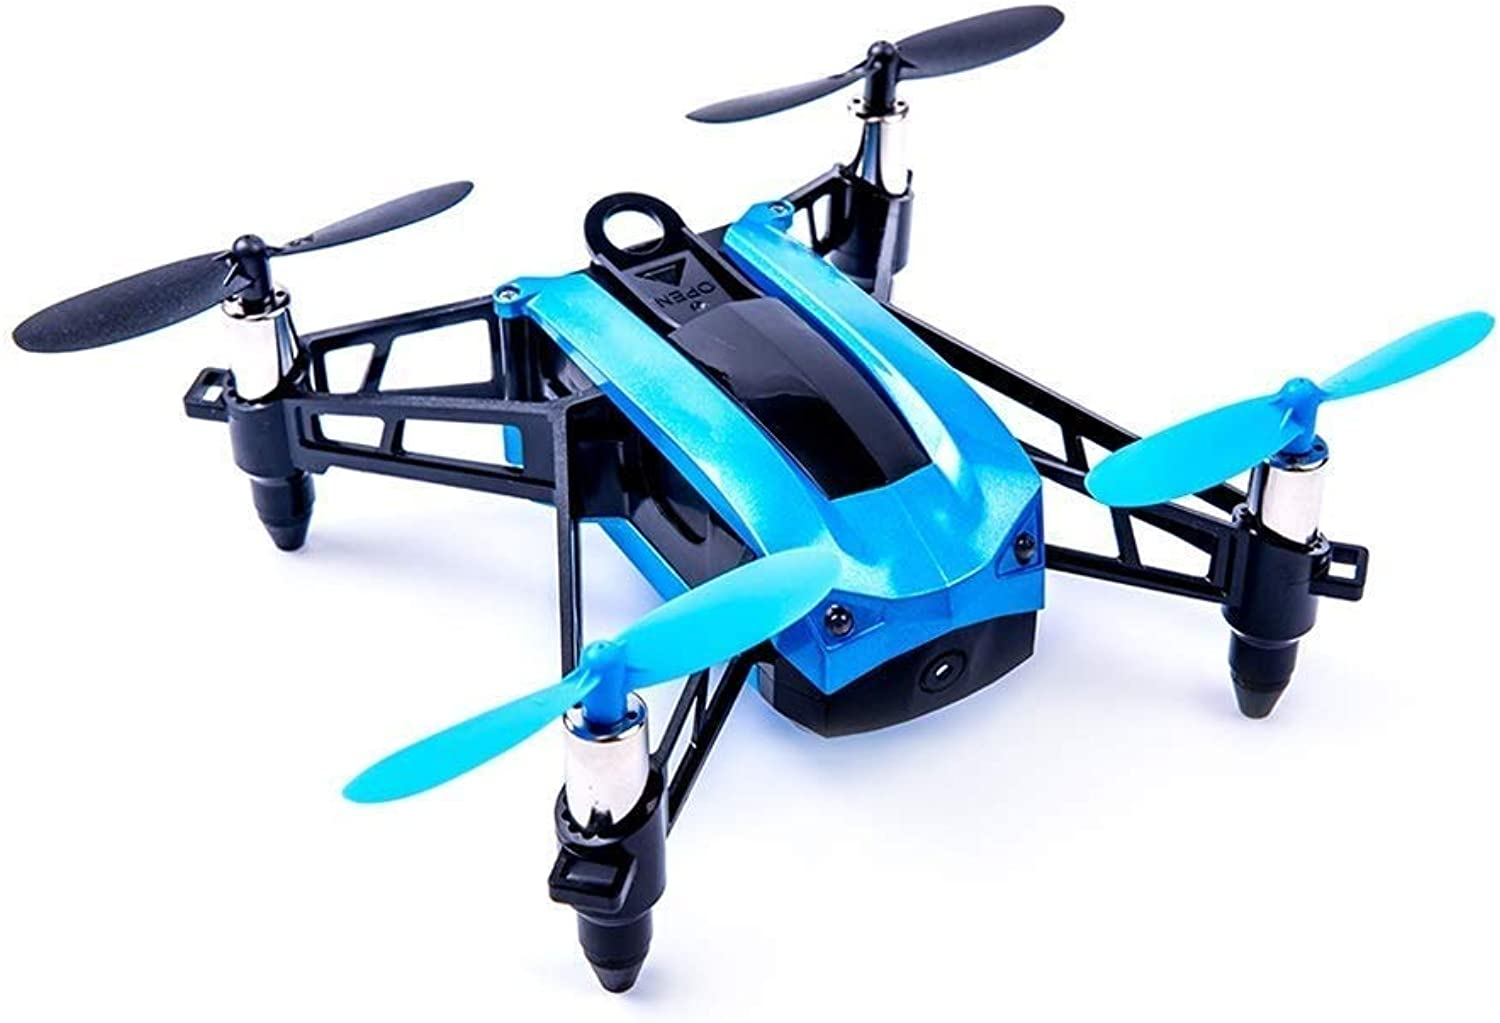 CHSSC Remote Control Helicopter, Headless Mode, Small Drone, LED Flash, 360 Degree Flip, One Button Return, Beginner (color   bluee)